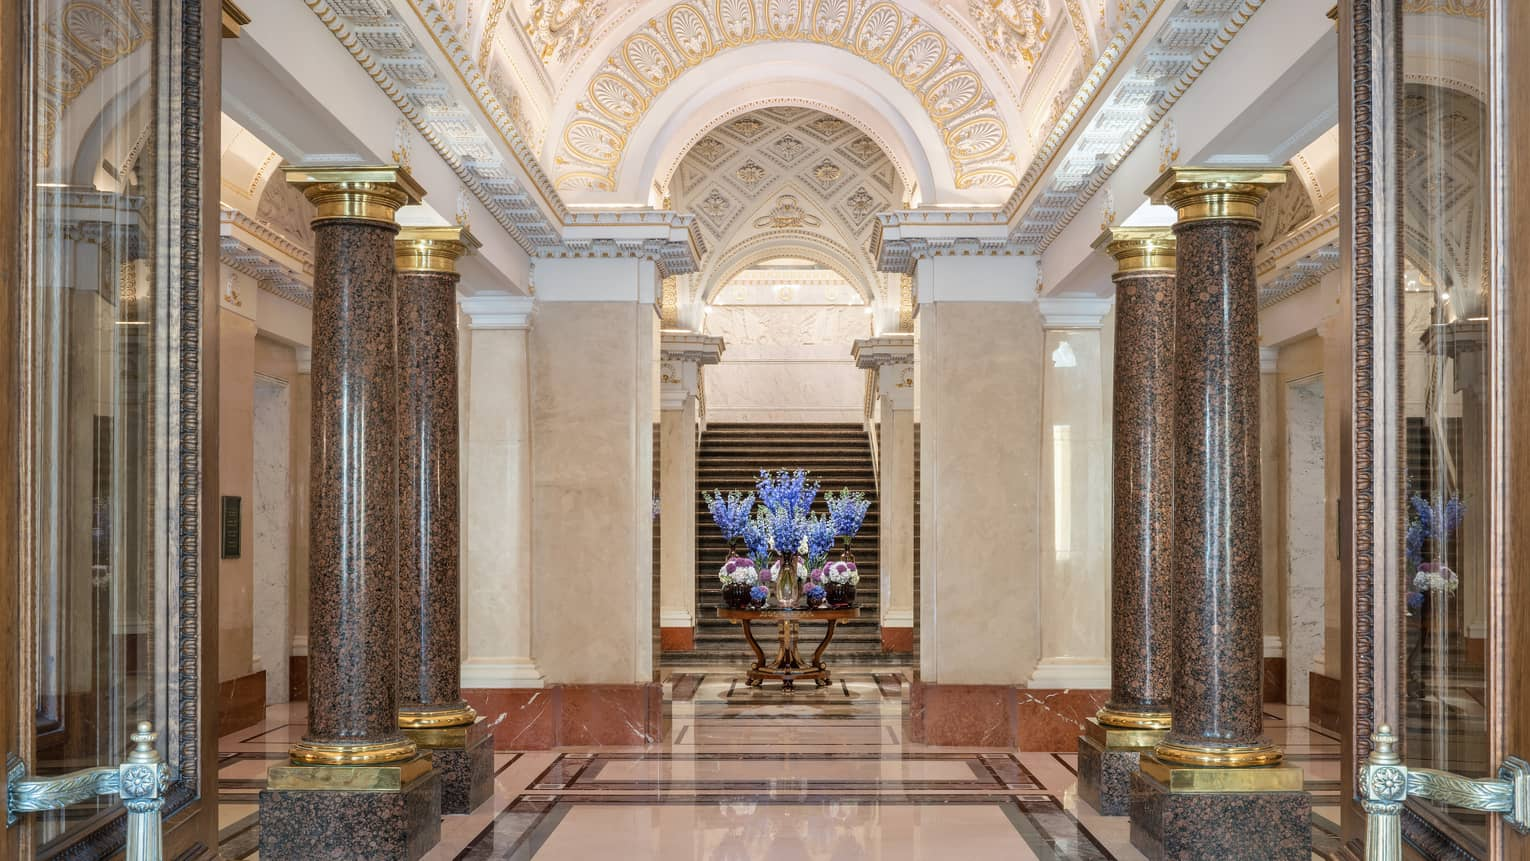 Four Seasons Hotel St. Petersburg with marble pillars, arched gold ceiling